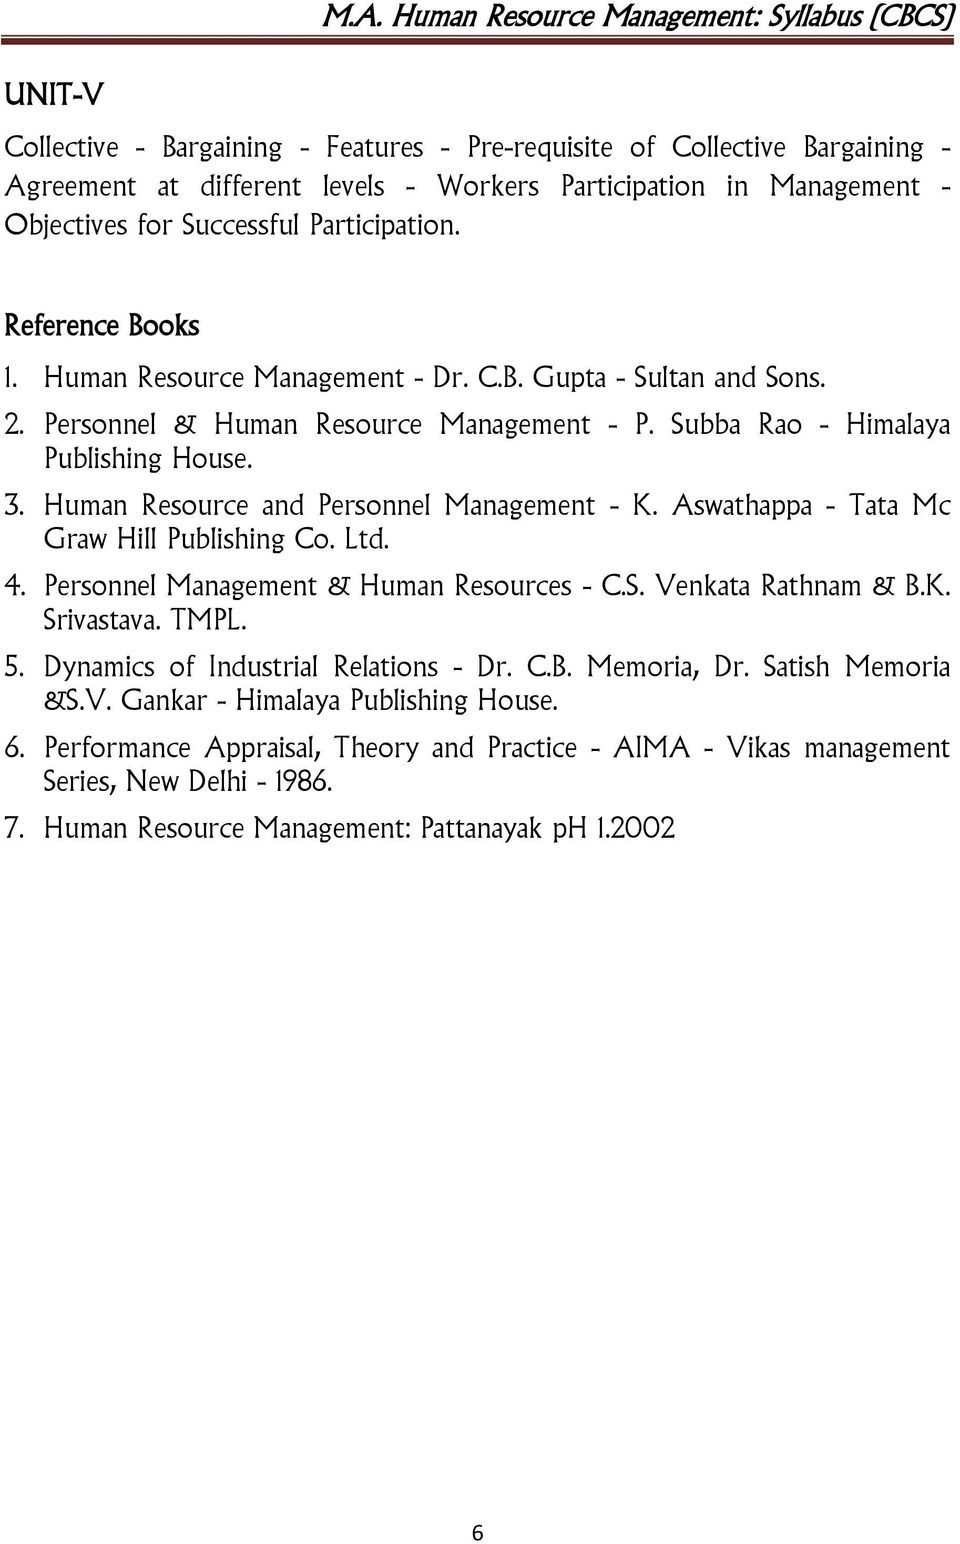 Human Resource and Personnel Management - K. Aswathappa - Tata Mc Graw Hill Publishing Co. Ltd. 4. Personnel Management & Human Resources - C.S. Venkata Rathnam & B.K. Srivastava. TMPL. 5.